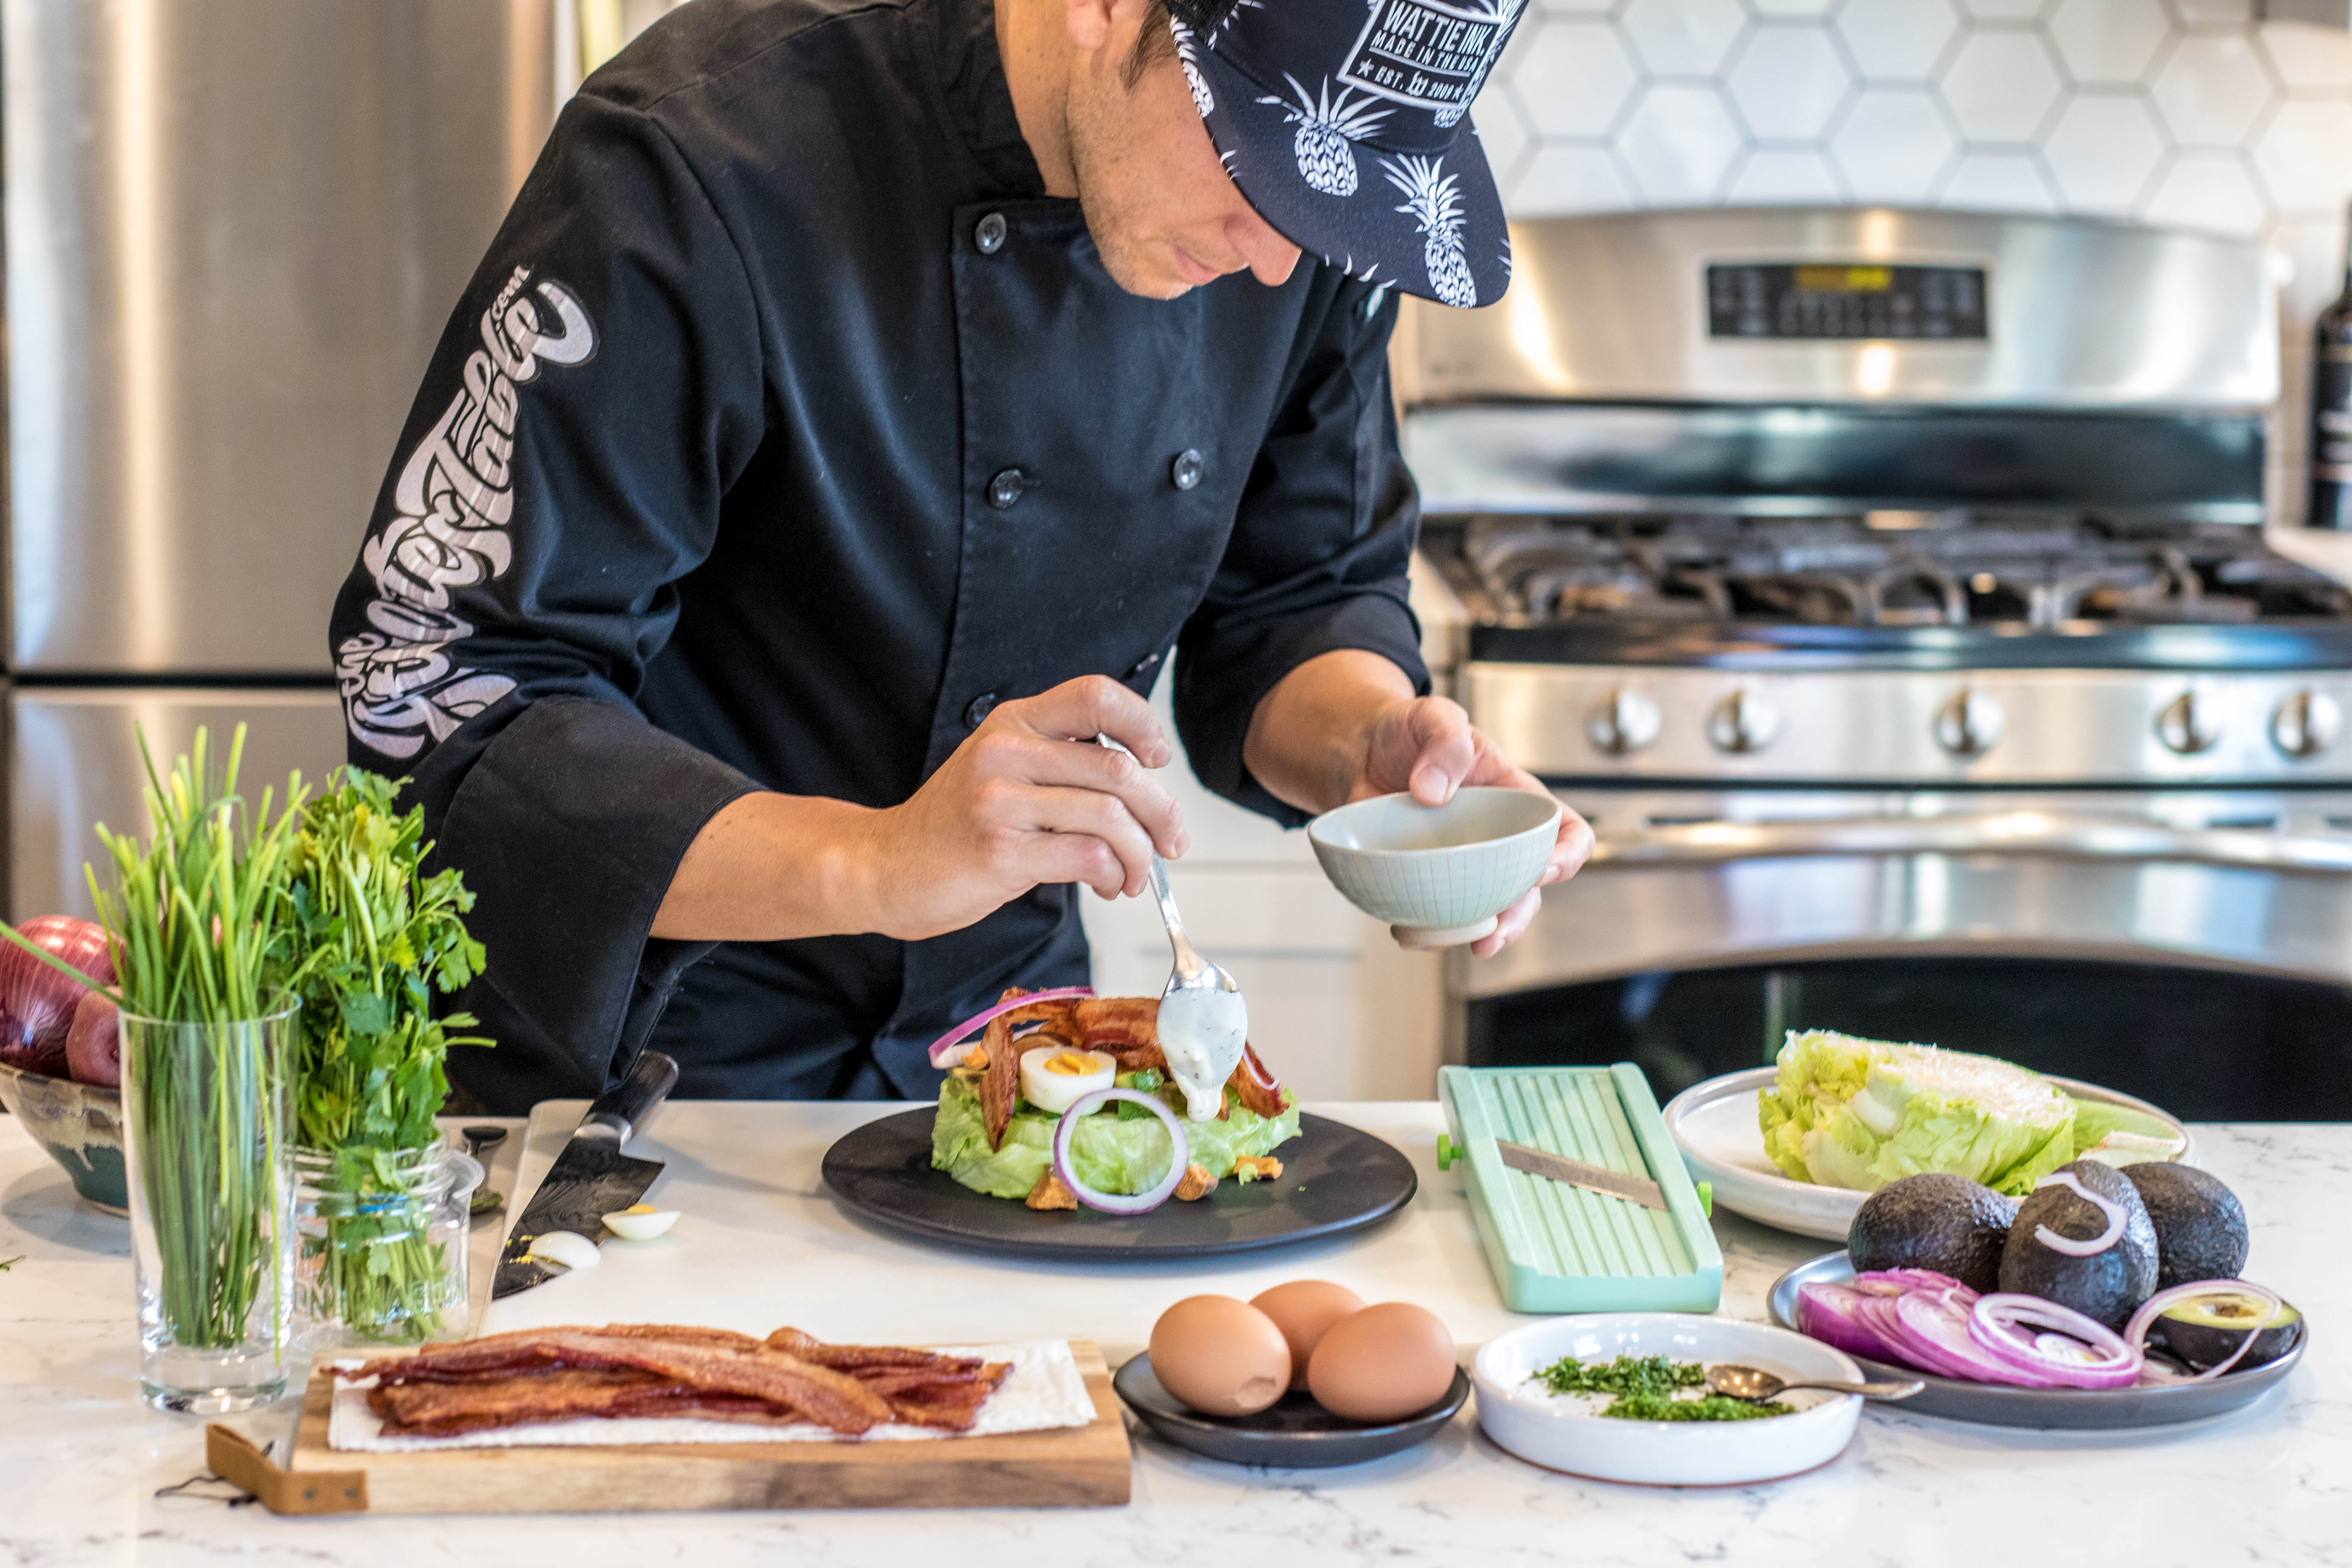 Eight recipes from wattie ink heather jacksons tucson dream camp ed noteaaron vinten runs the athletes table an excellent blog about fueling athletes with excellent and healthy food he packed up his knives forumfinder Gallery